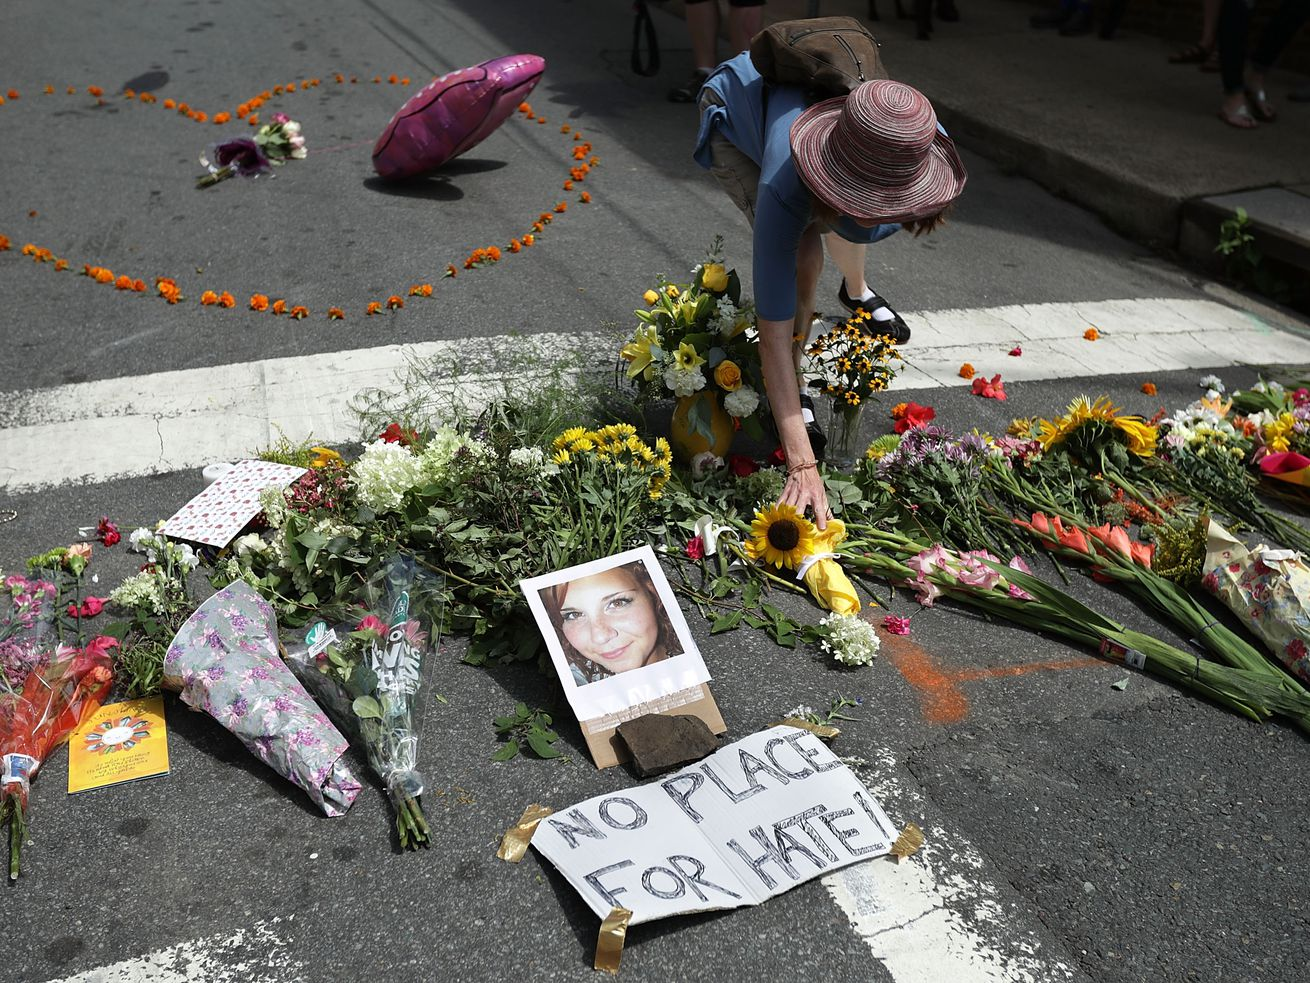 A woman places flowers at an informal memorial to 32-year-old Heather Heyer, who was killed when a car plowed into a crowd of people protesting against the white supremacist Unite the Right rally, August 13, 2017, in Charlottesville, Virginia.